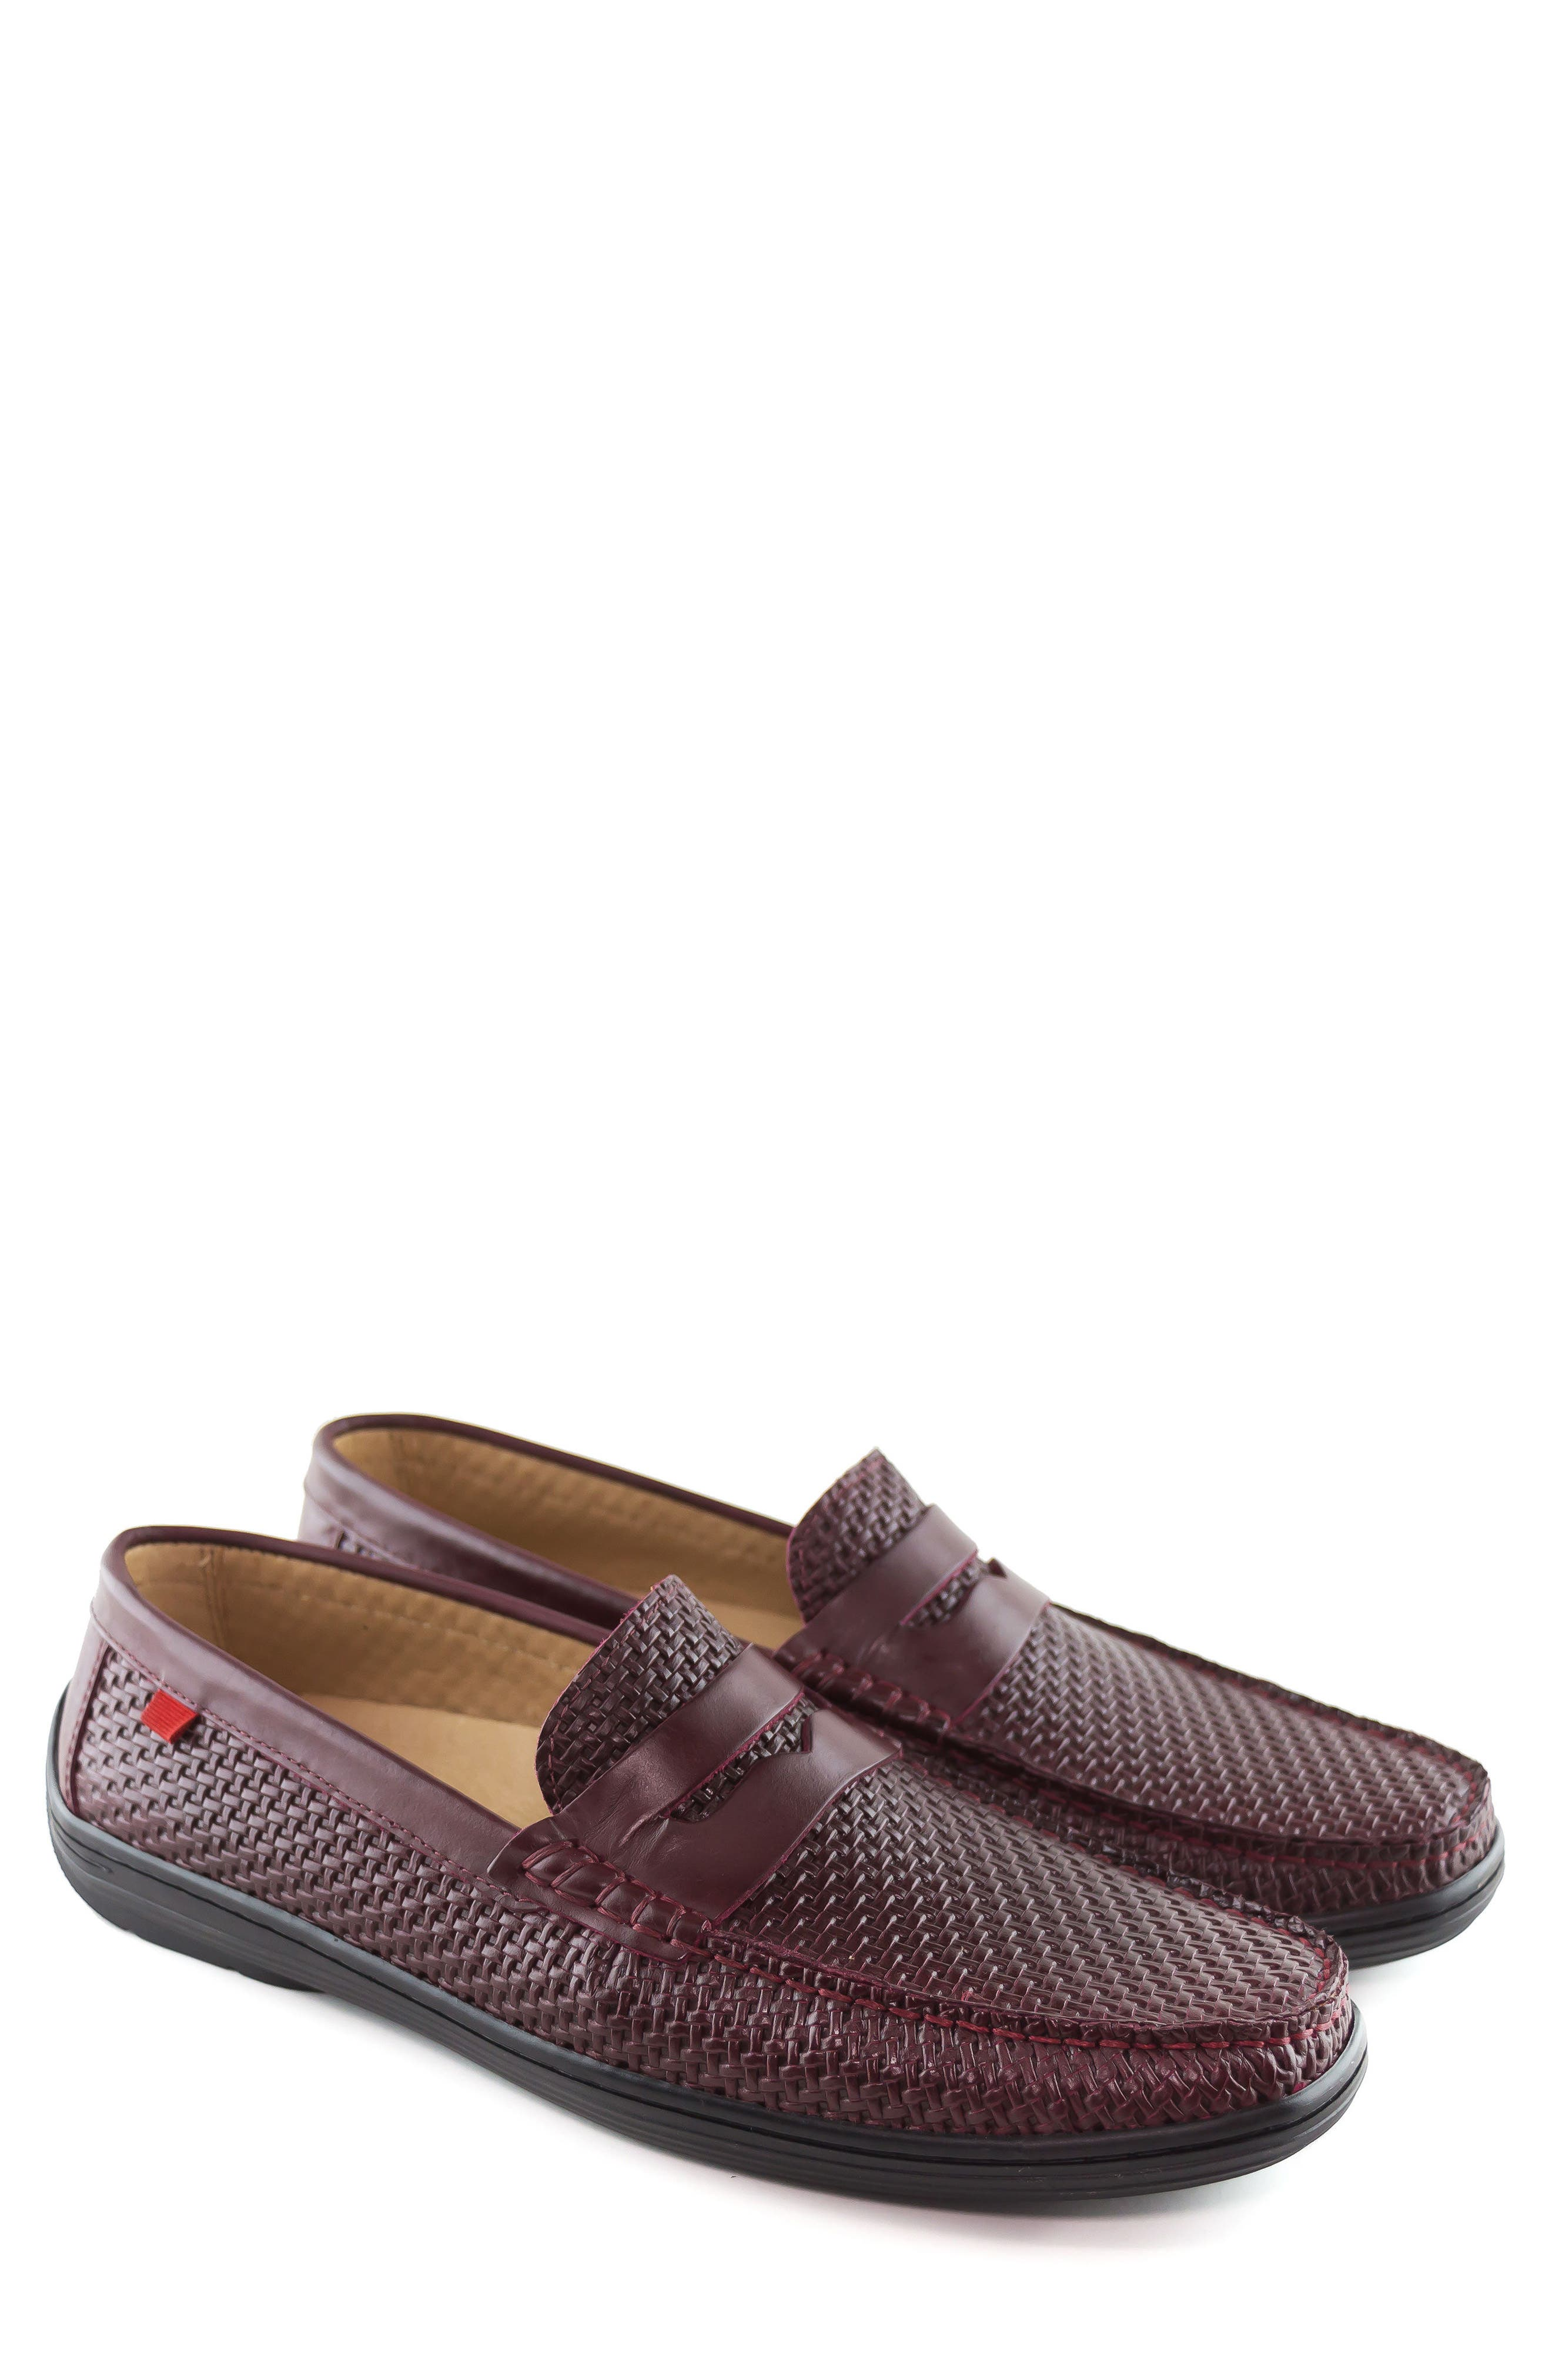 Atlantic Penny Loafer,                             Alternate thumbnail 42, color,